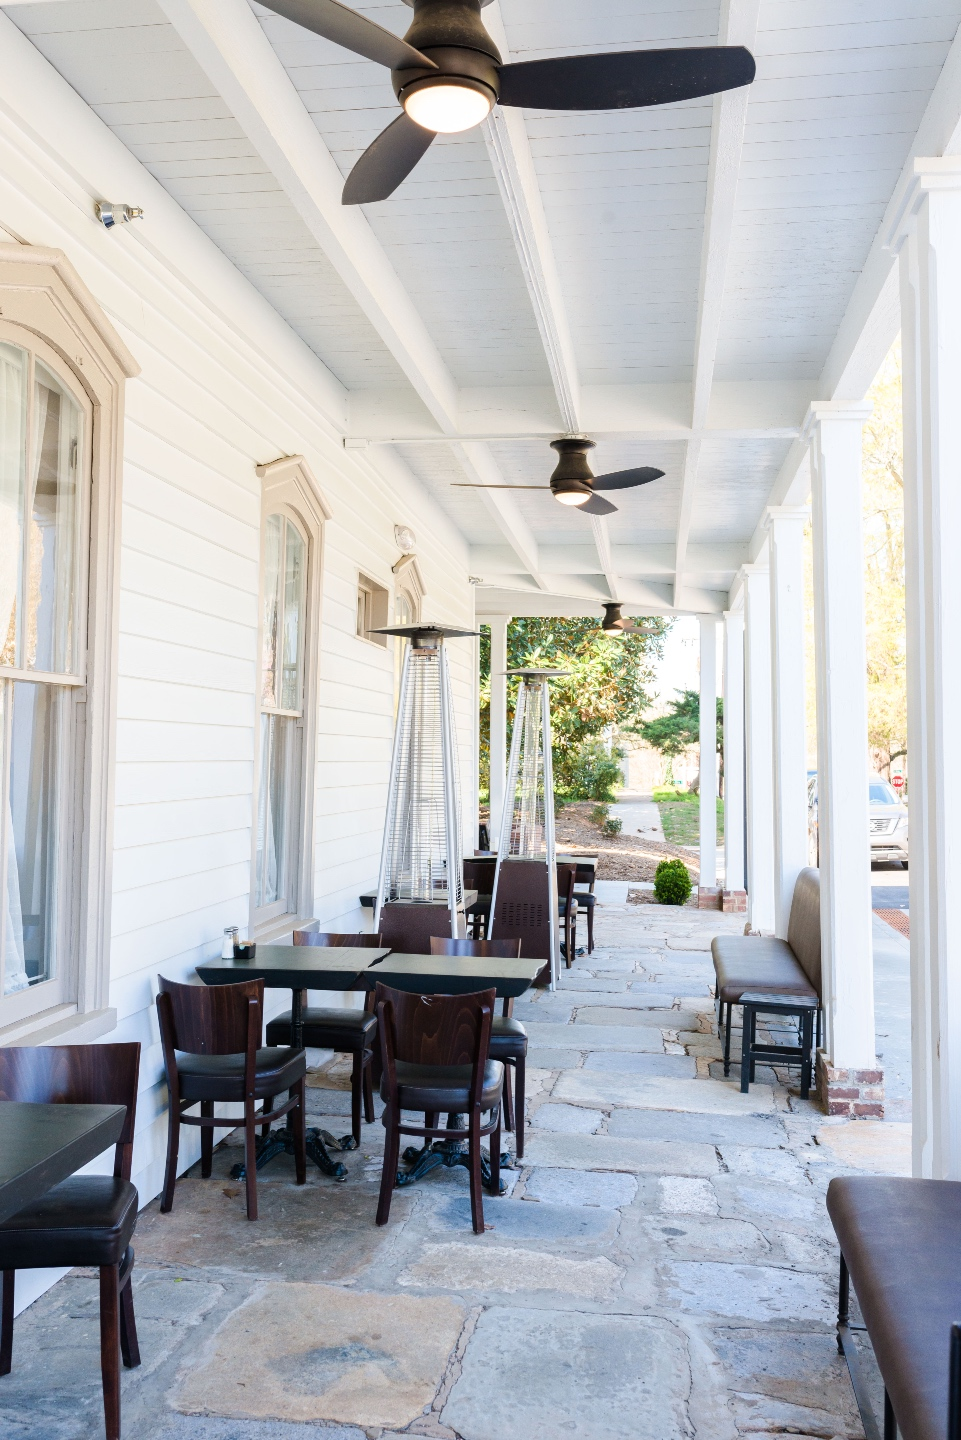 Places to Stay: The Colonial Inn in Hillsborough NC - I'm Fixin' To - @imfixintoblog |The Colonial Inn Hillsborough NC by popular NC travel blog, I'm Fixin' To: image of a patio set with tables and chairs at the Colonial Inn.